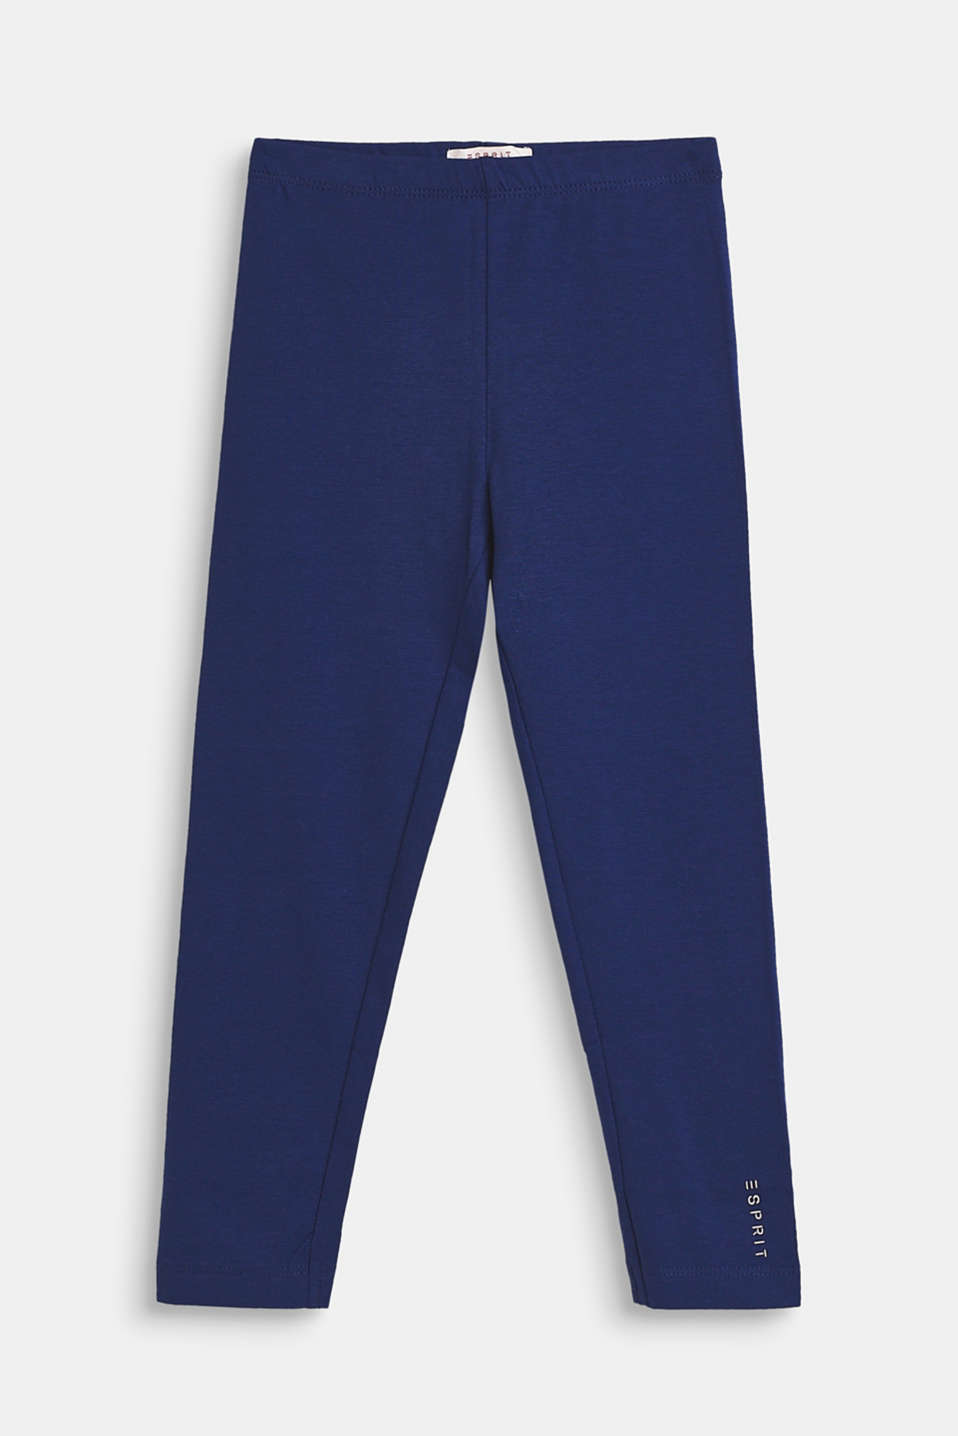 Esprit - Basleggings i bomullsstretch